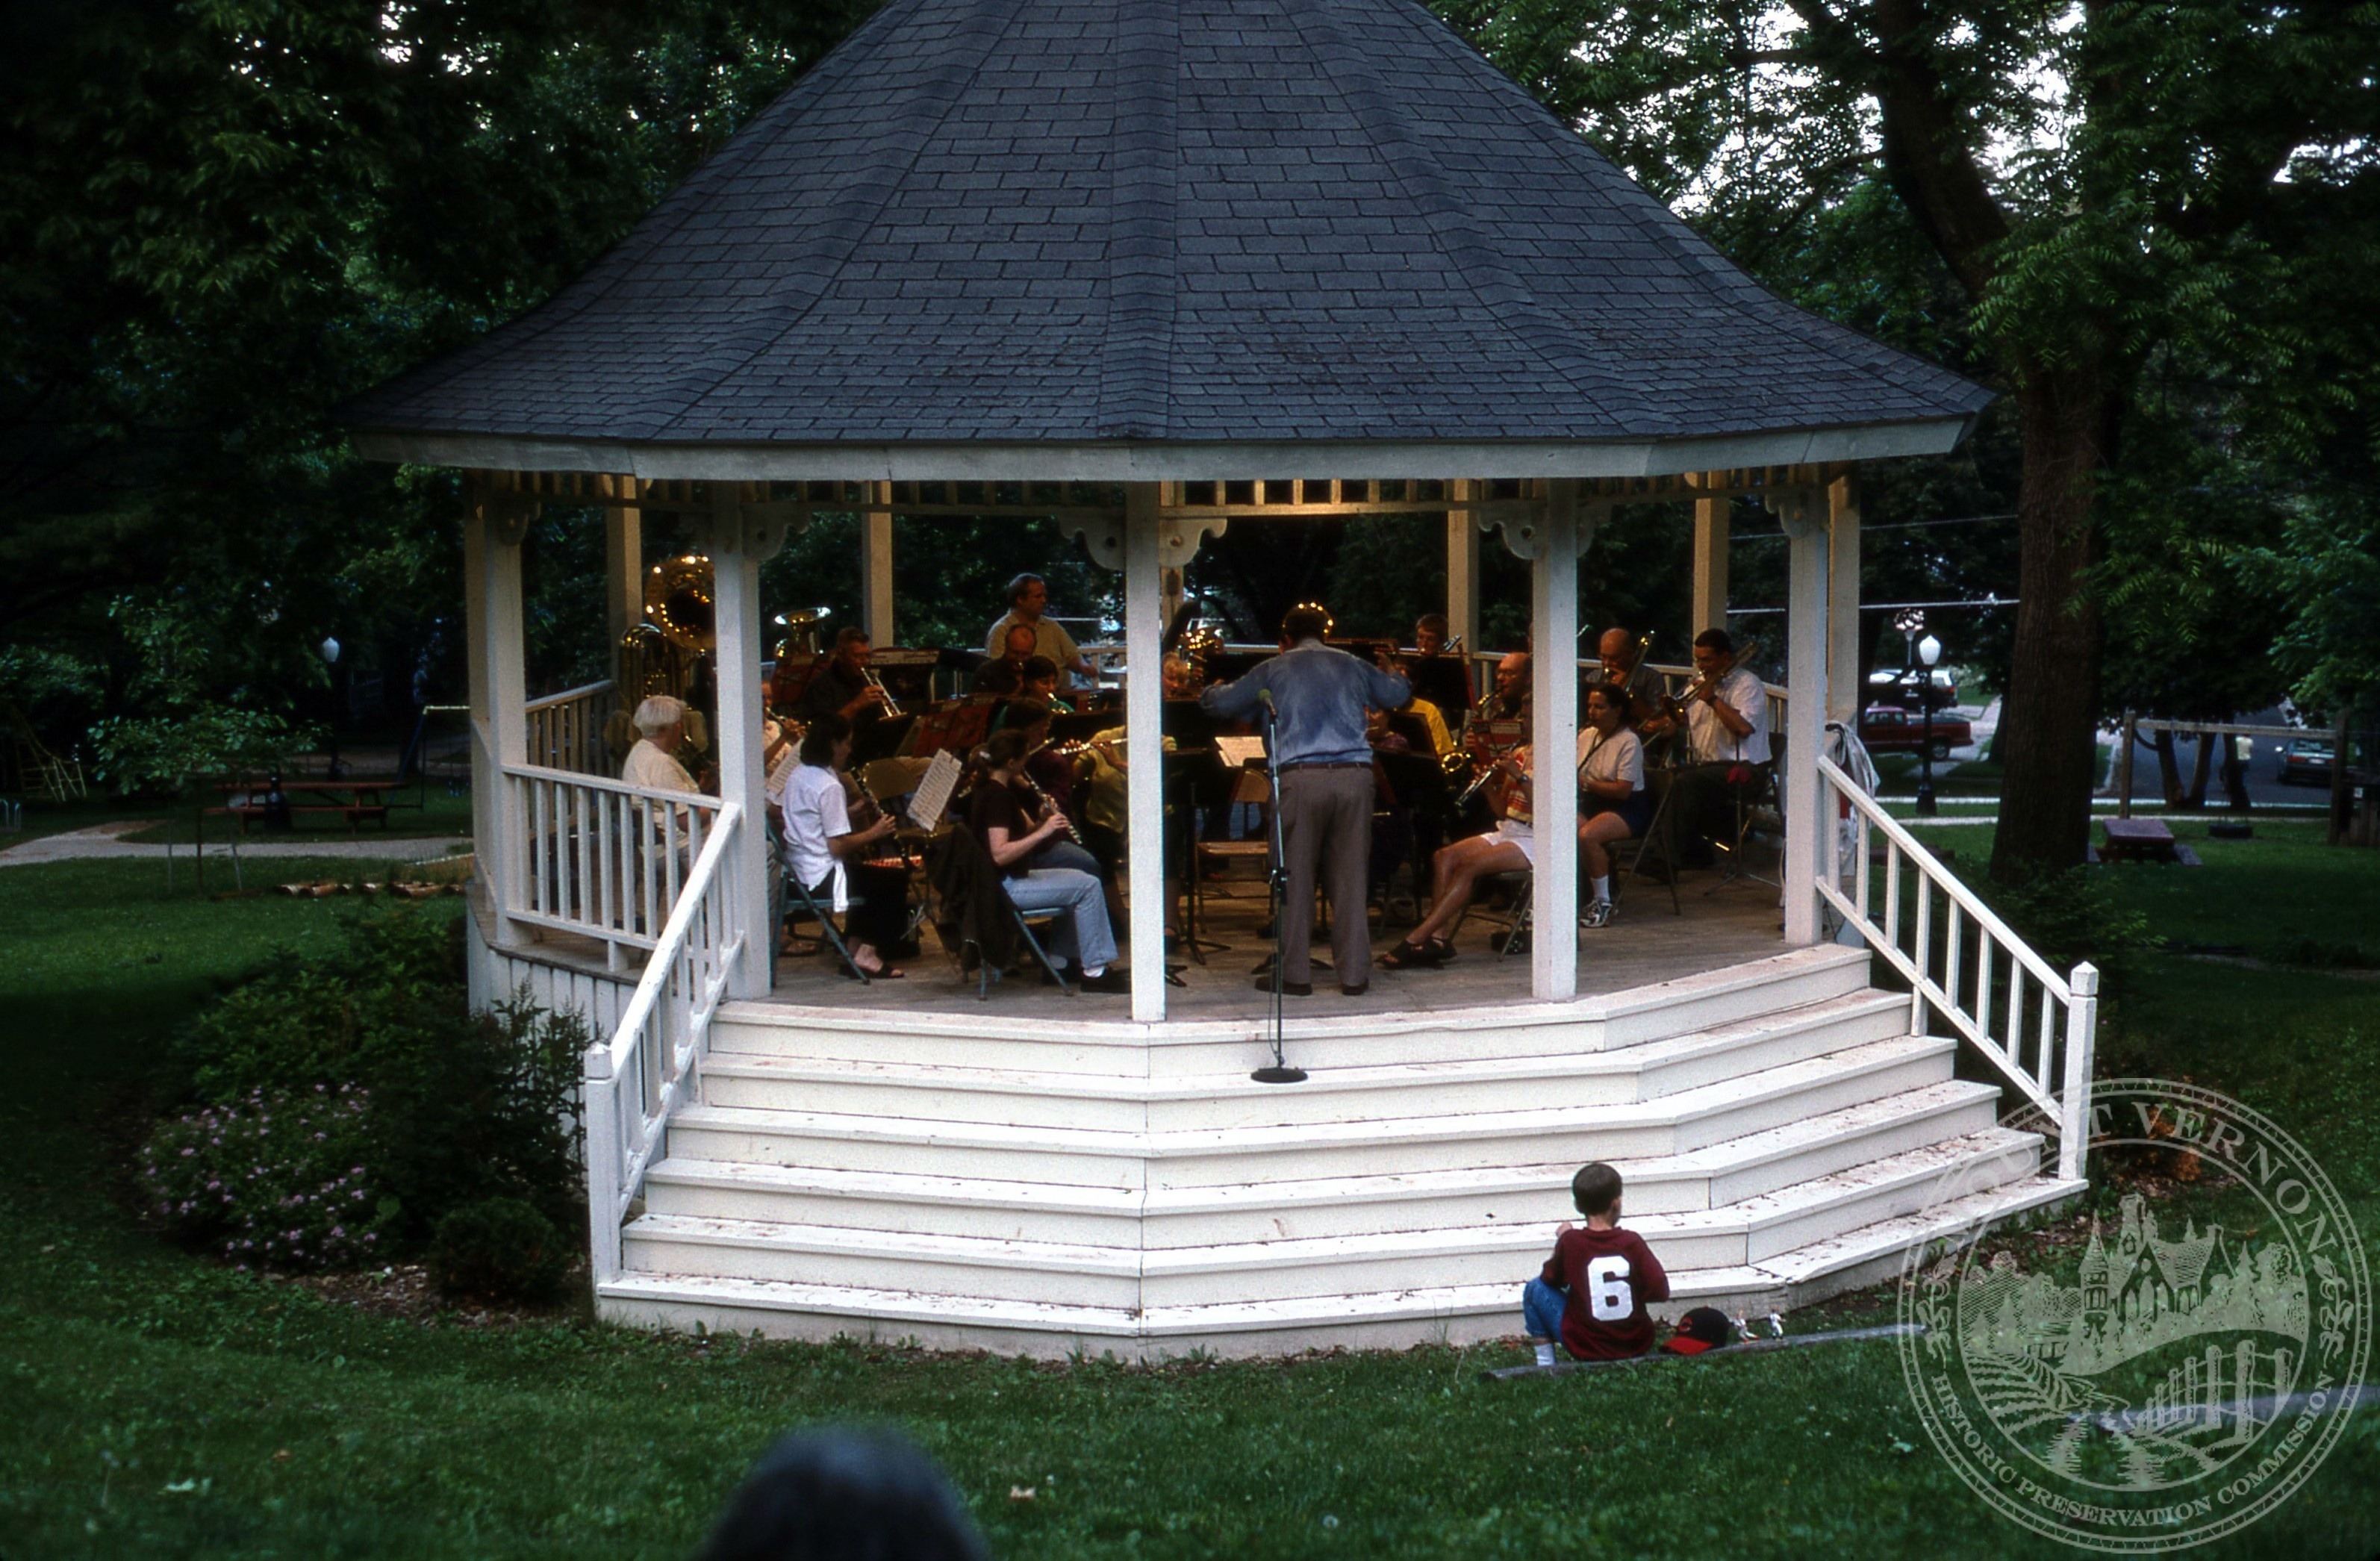 Photo of Memorial Park Gazebo, June 2003